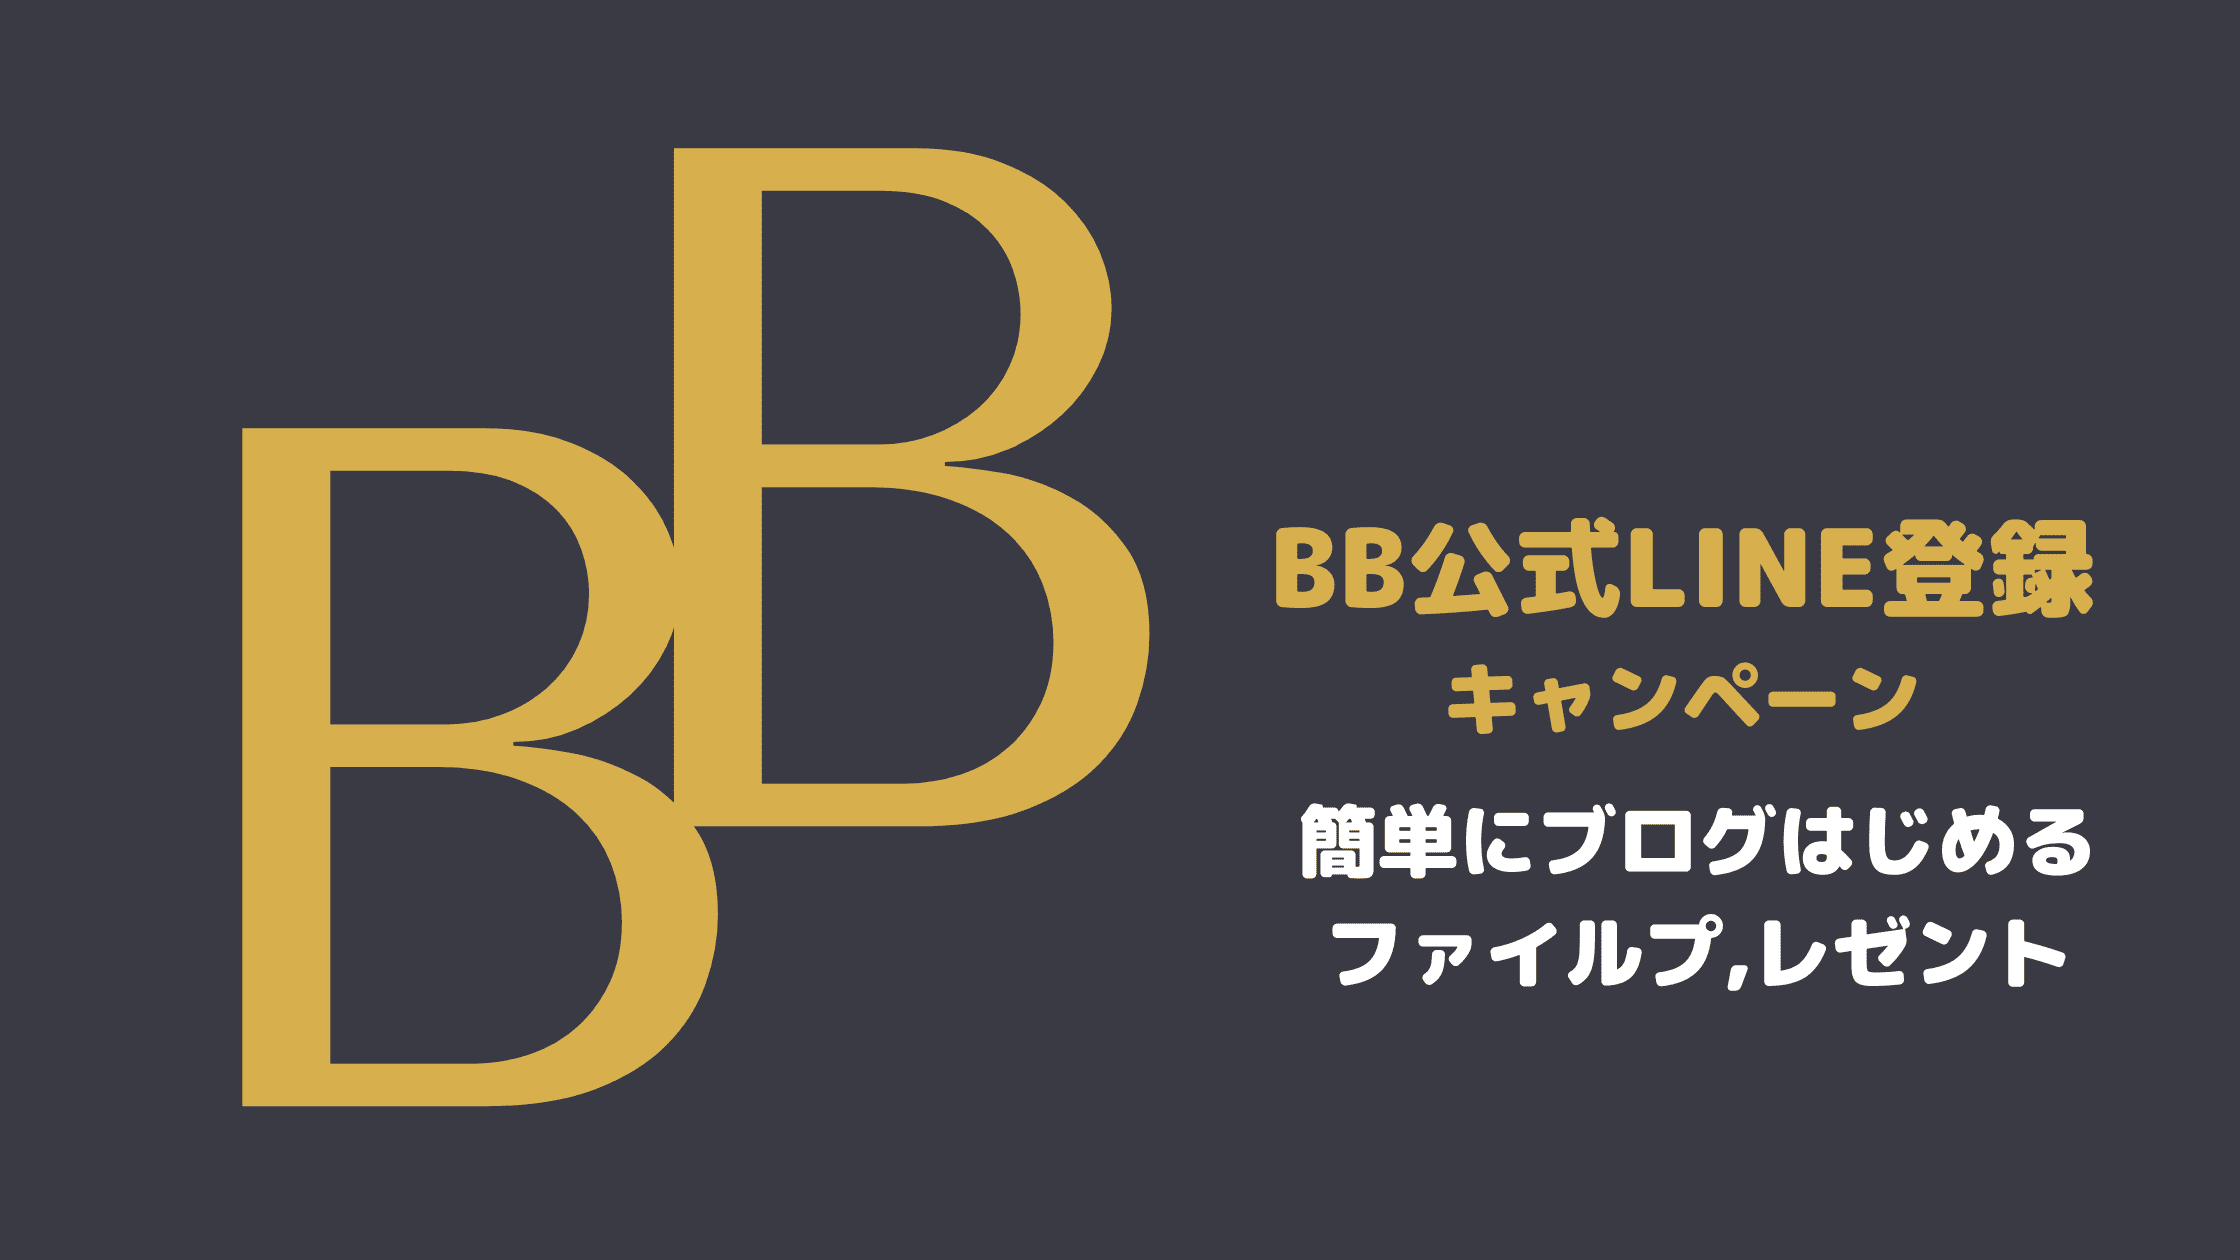 bb-line-official-project02